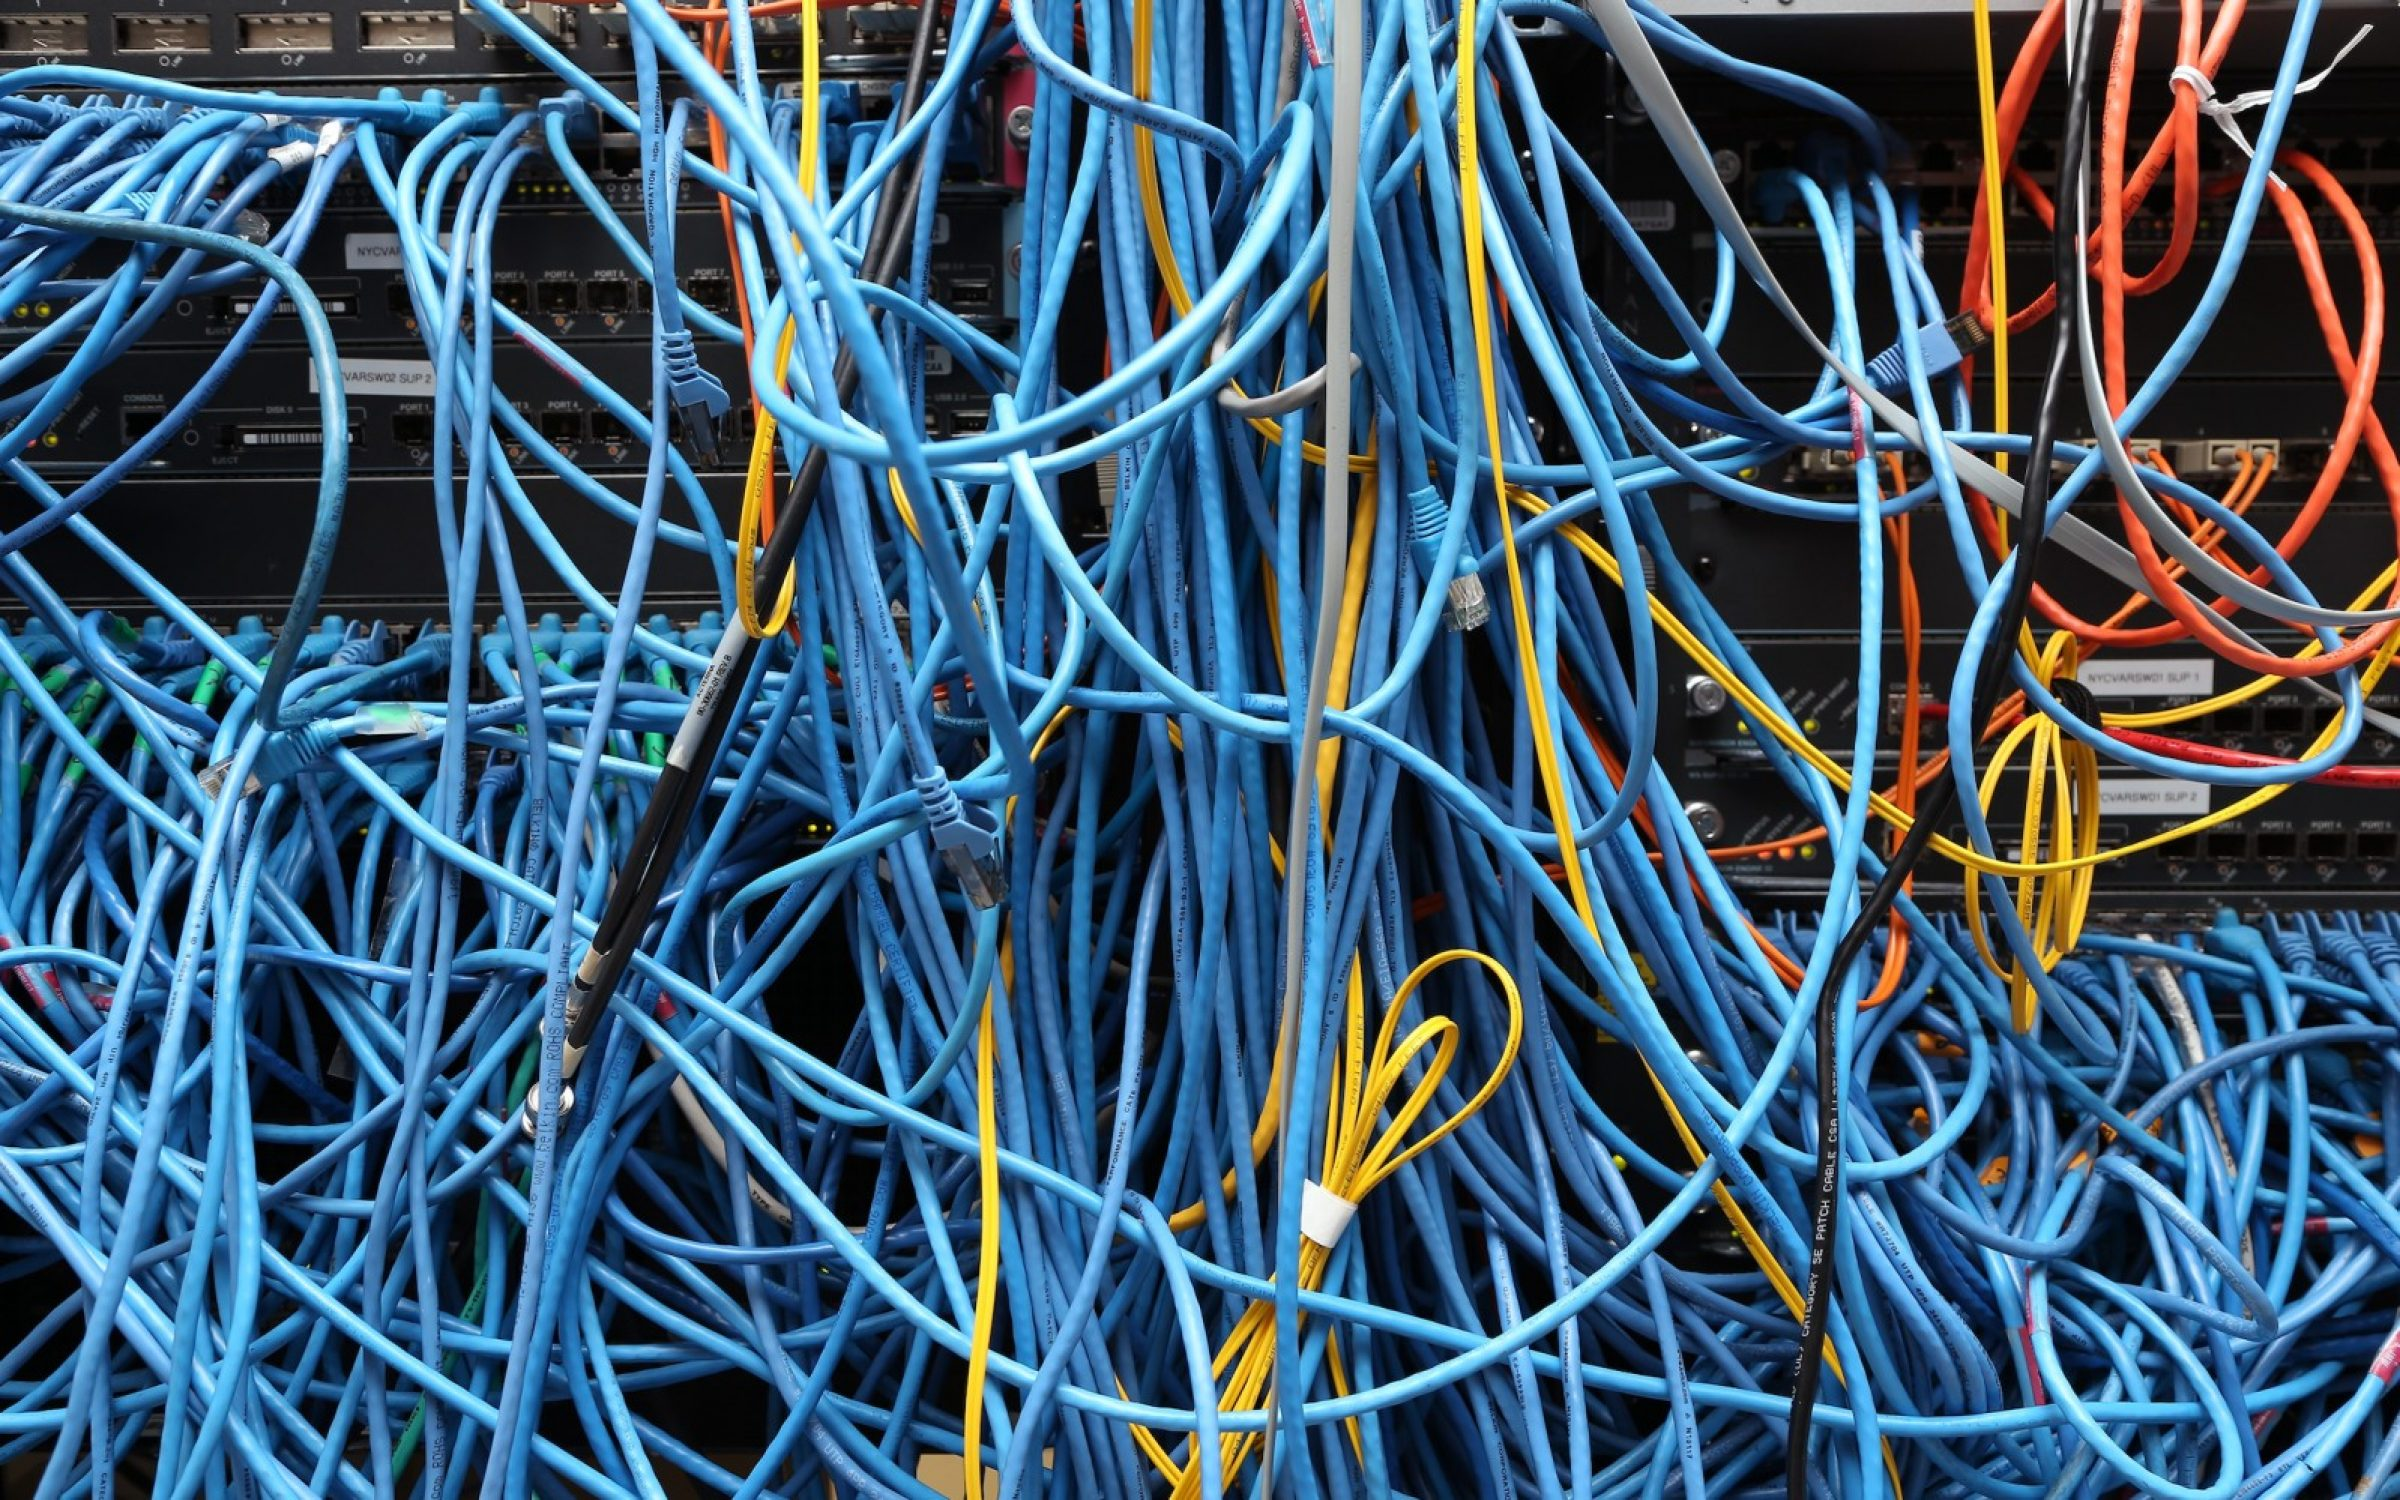 A network server in New York City, 2014. Credit: Getty Images.